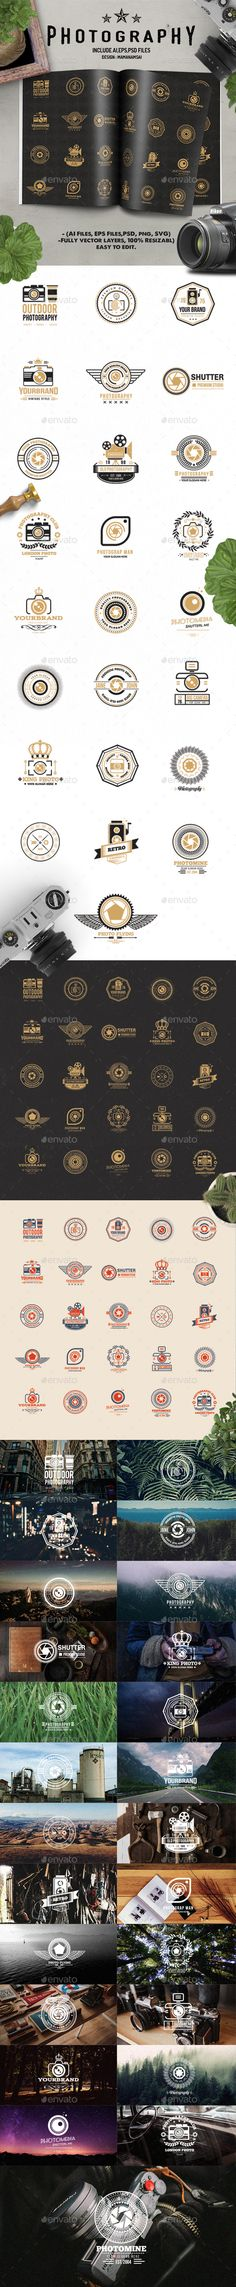 25 Photography Logo Design Template - Web Element Template PSD, EPS Vector, AI Illustrator. Download here: https://graphicriver.net/item/25-photography-logo-design/17353791?ref=yinkira